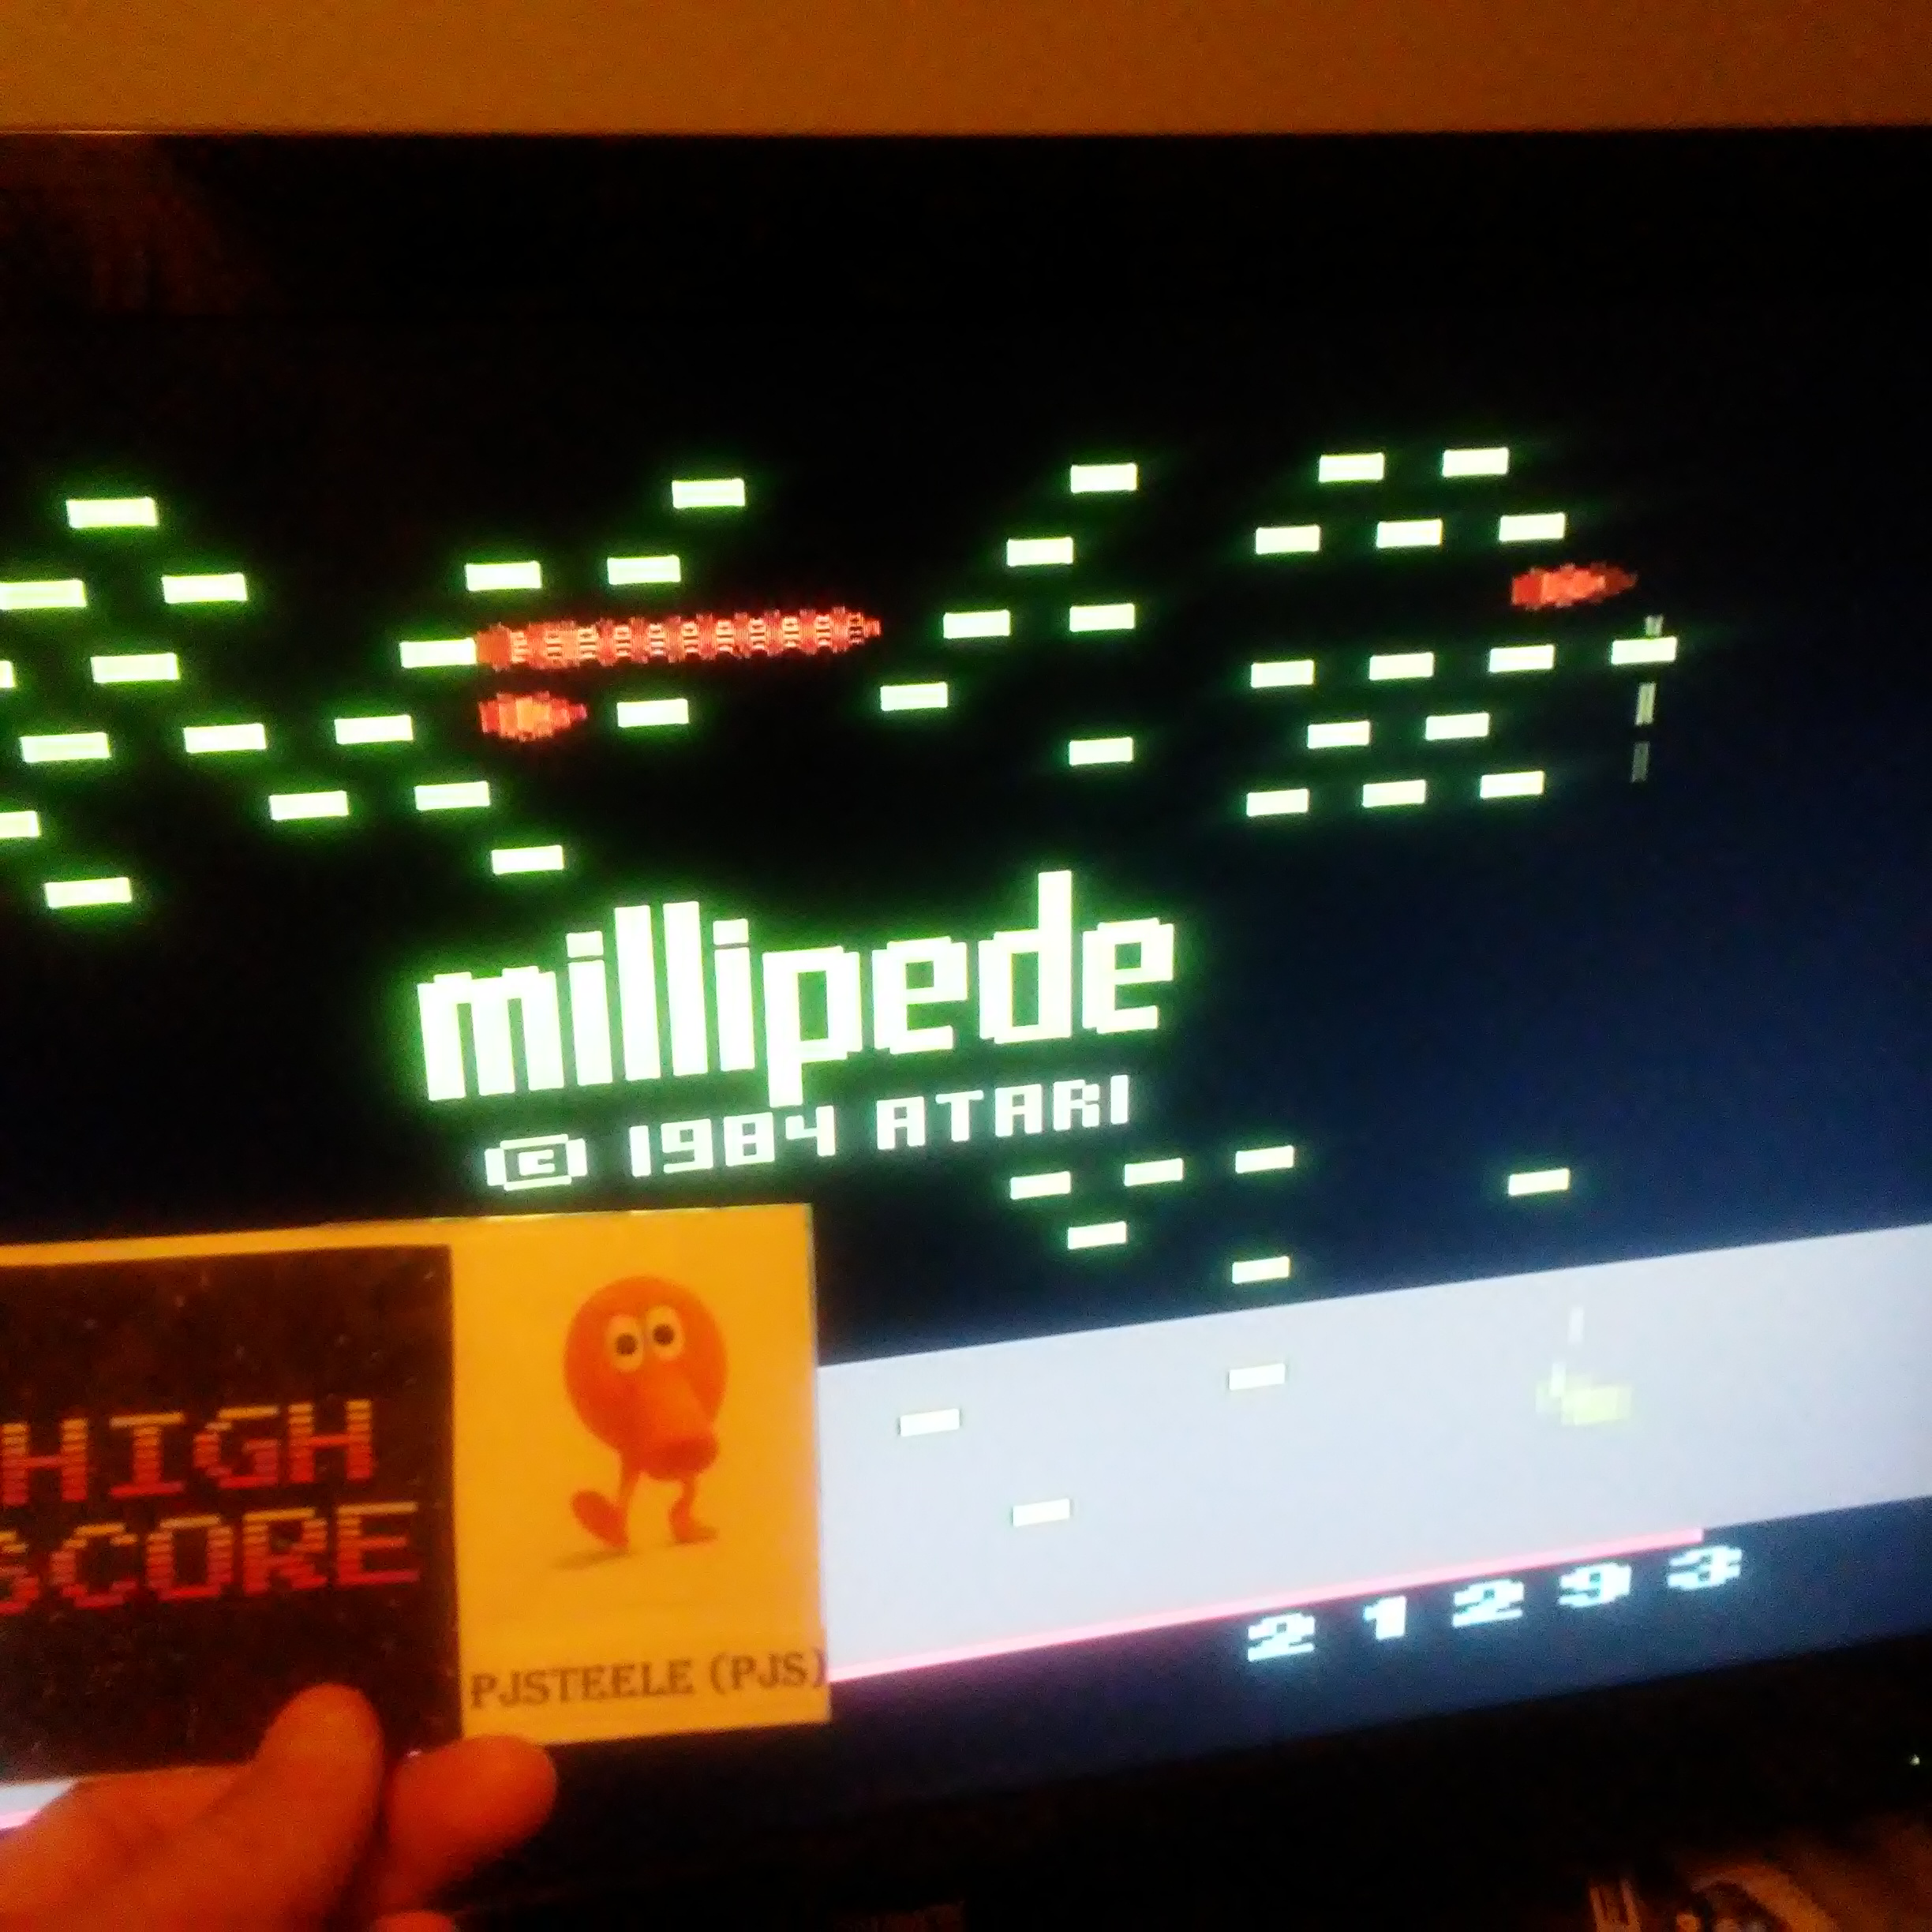 Pjsteele: Millipede (Atari 2600 Emulated Novice/B Mode) 21,293 points on 2017-10-24 20:28:39